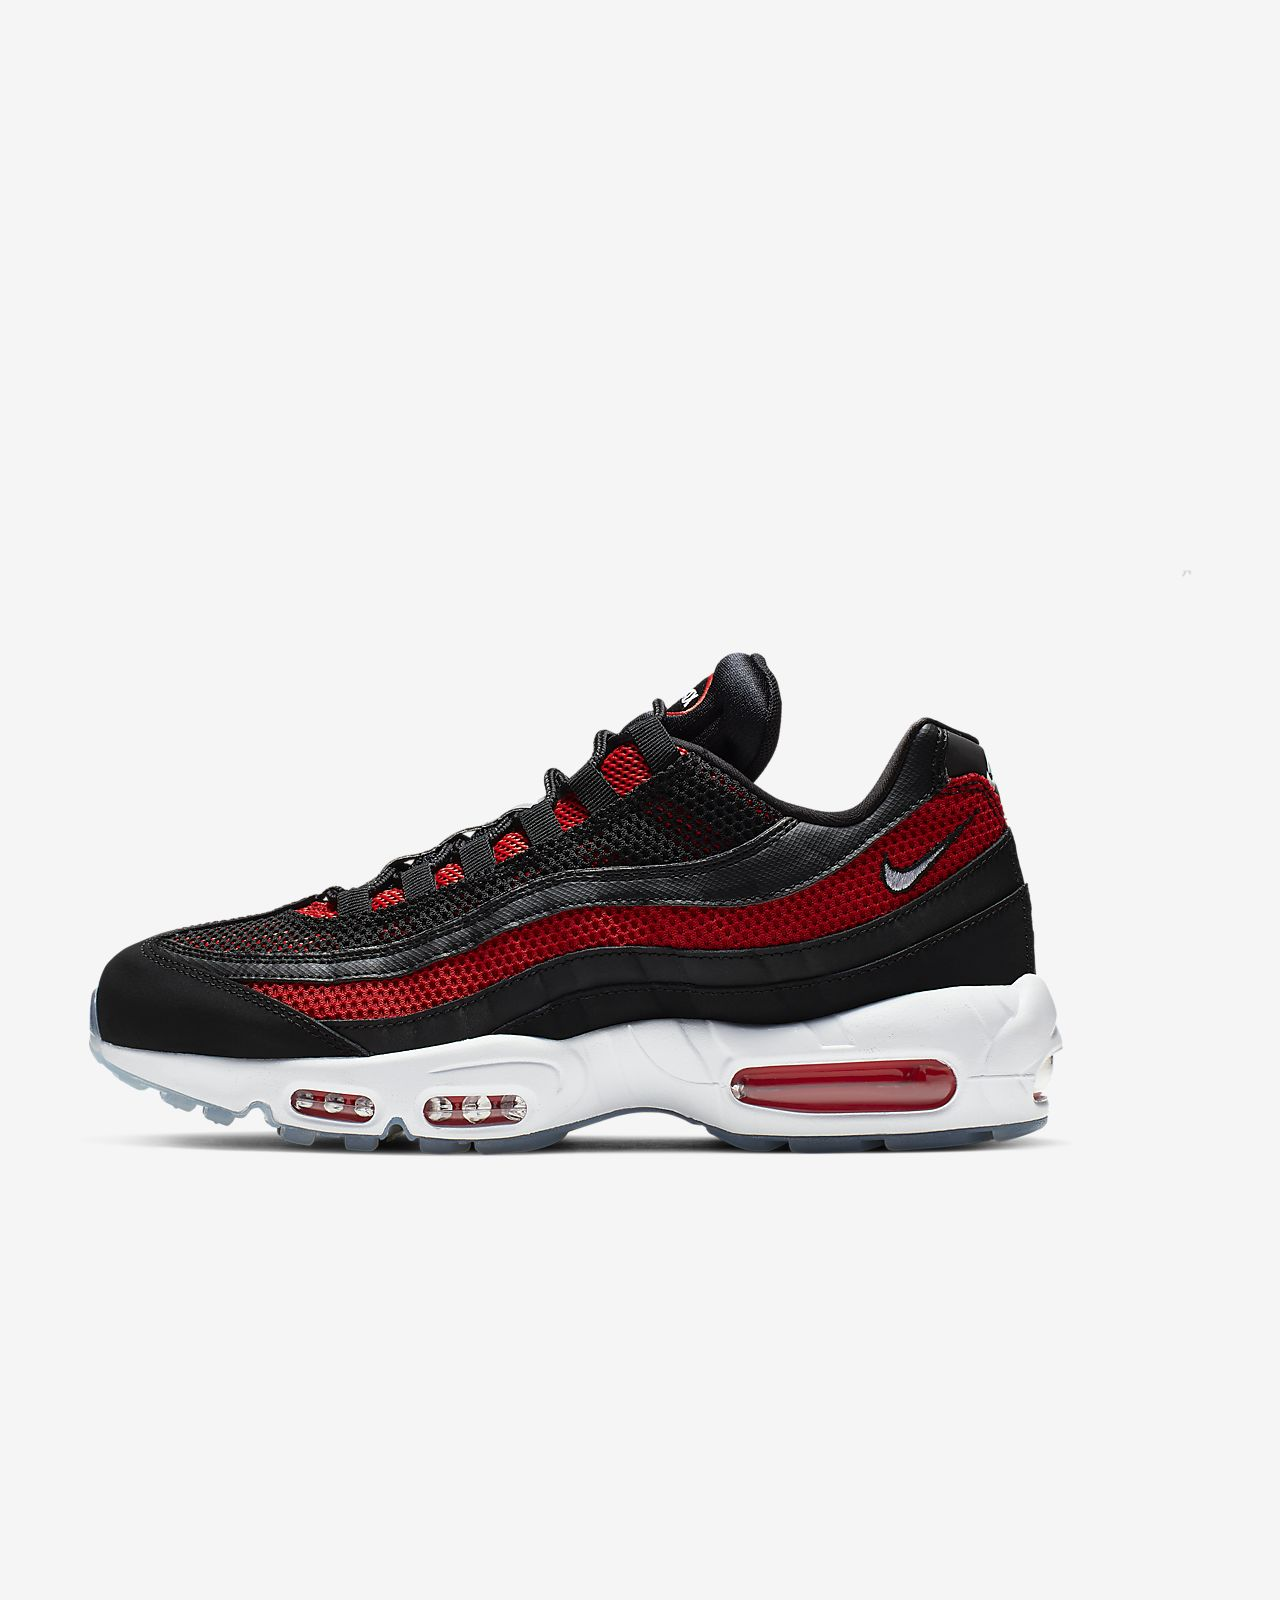 online retailer b89b2 73ab8 ... Nike Air Max 95 Essential Men s Shoe